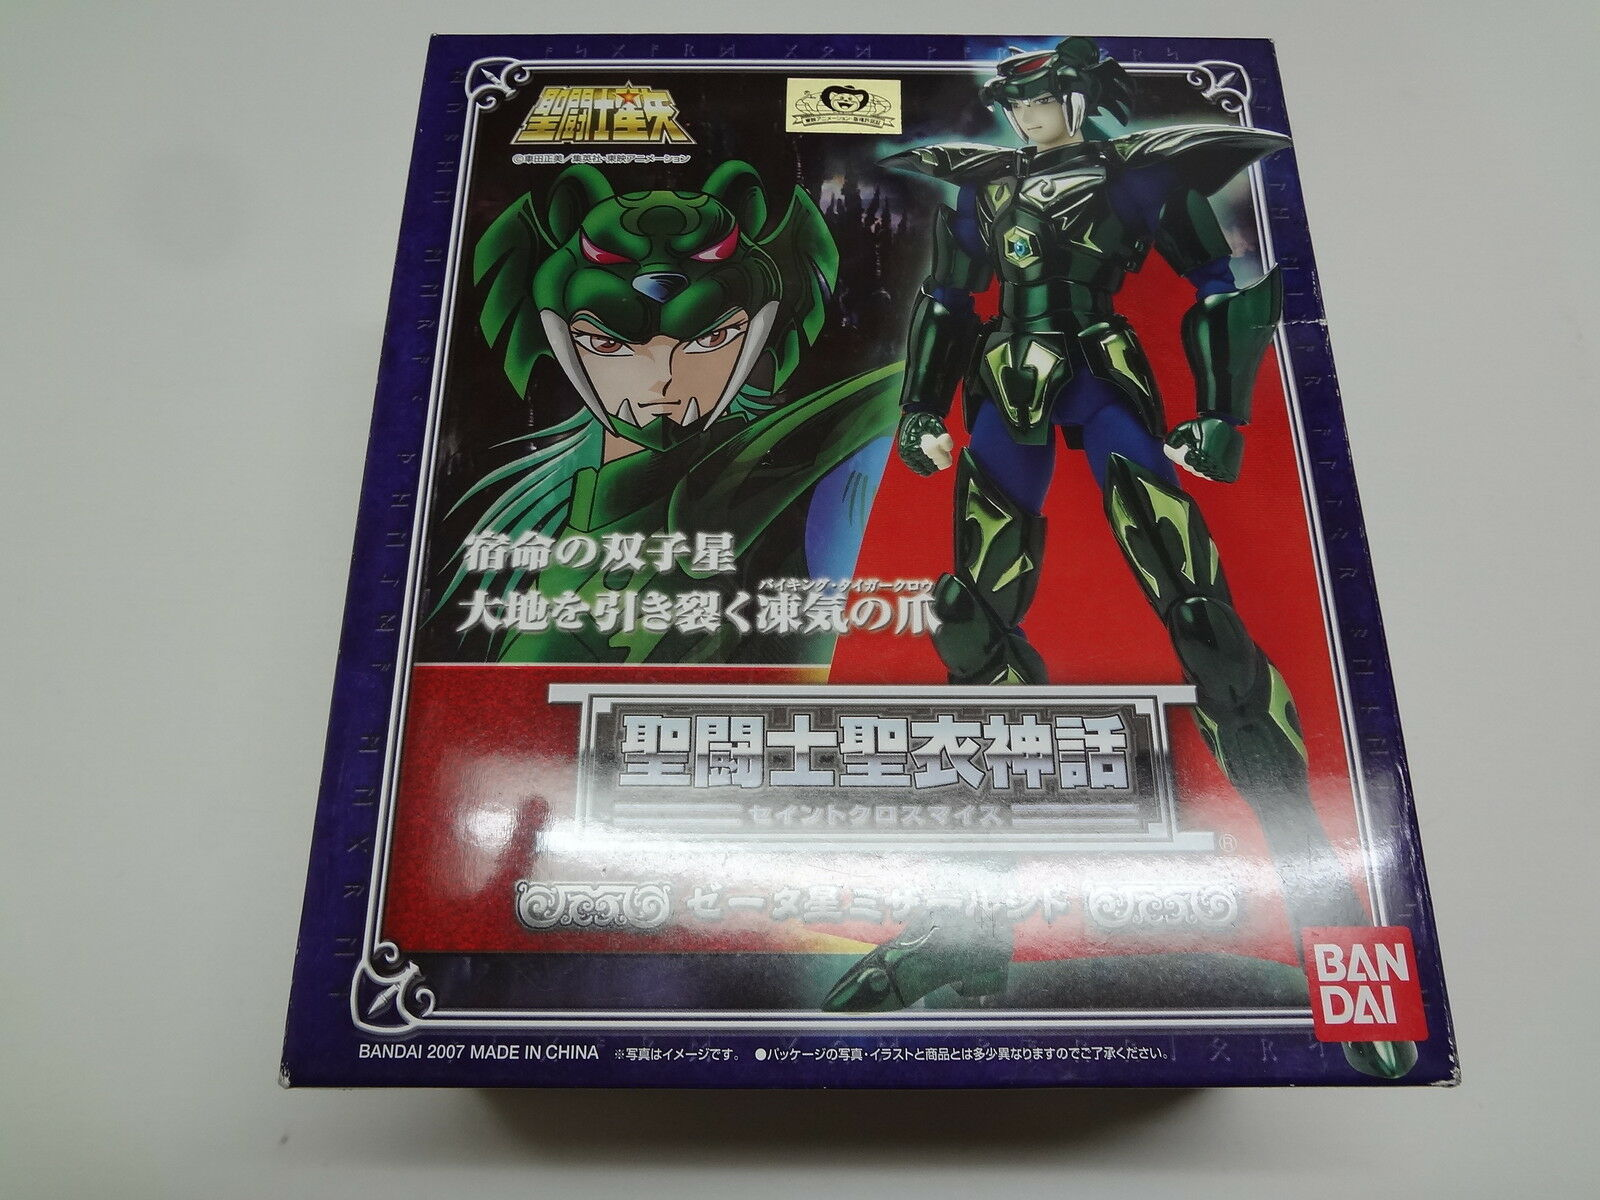 Zeta Mizar Syd Bandai Saint Seiya Cloth Myth Japan USED